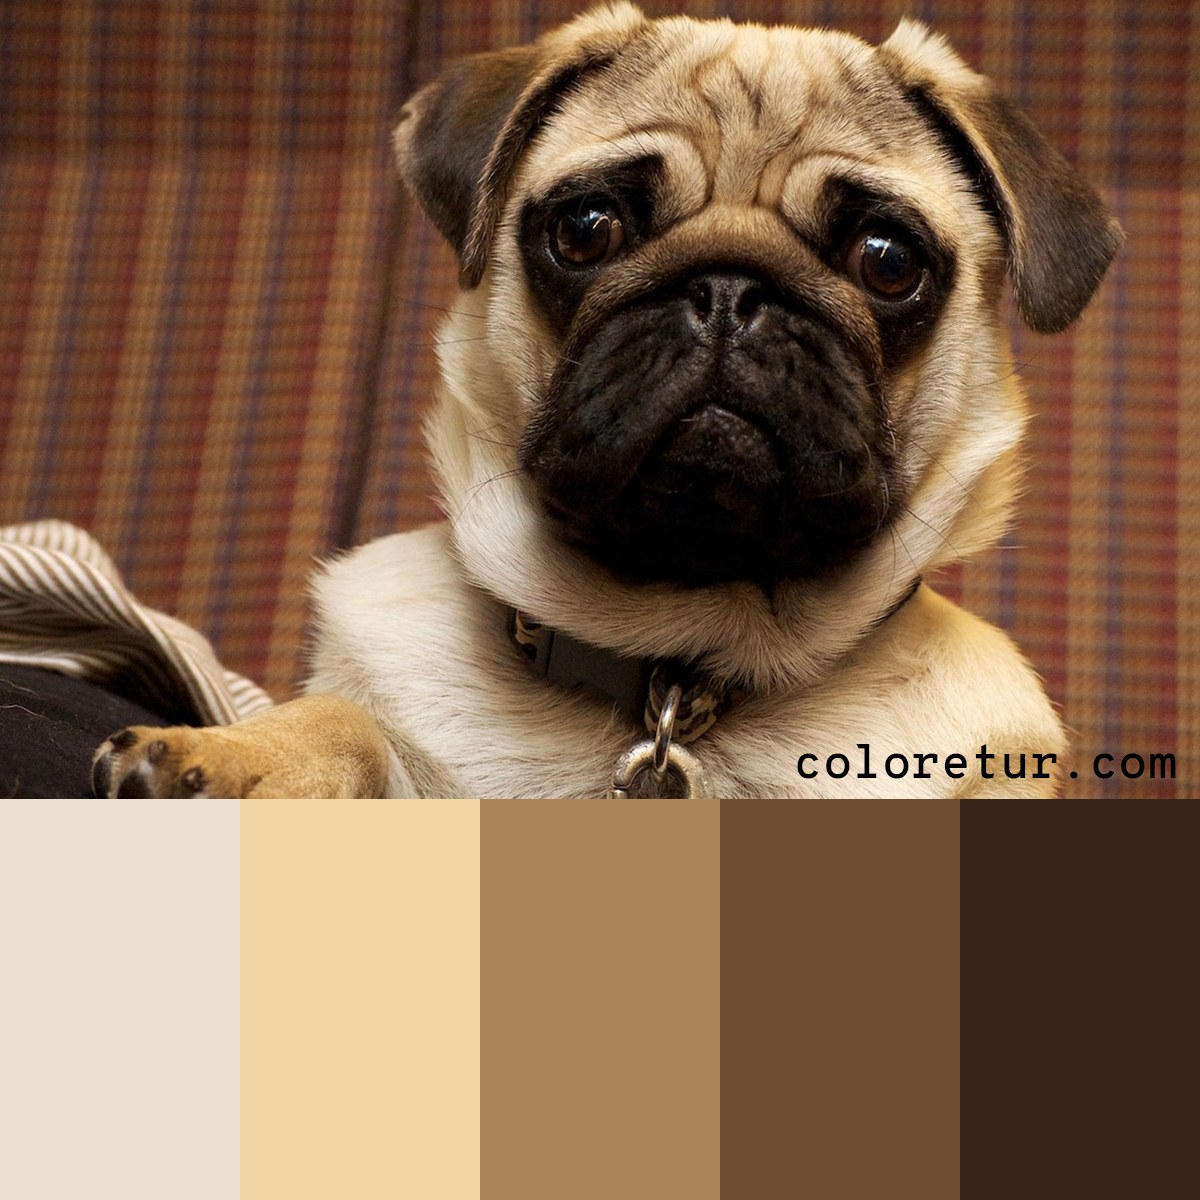 A soft, warm palette from a pug puppy.